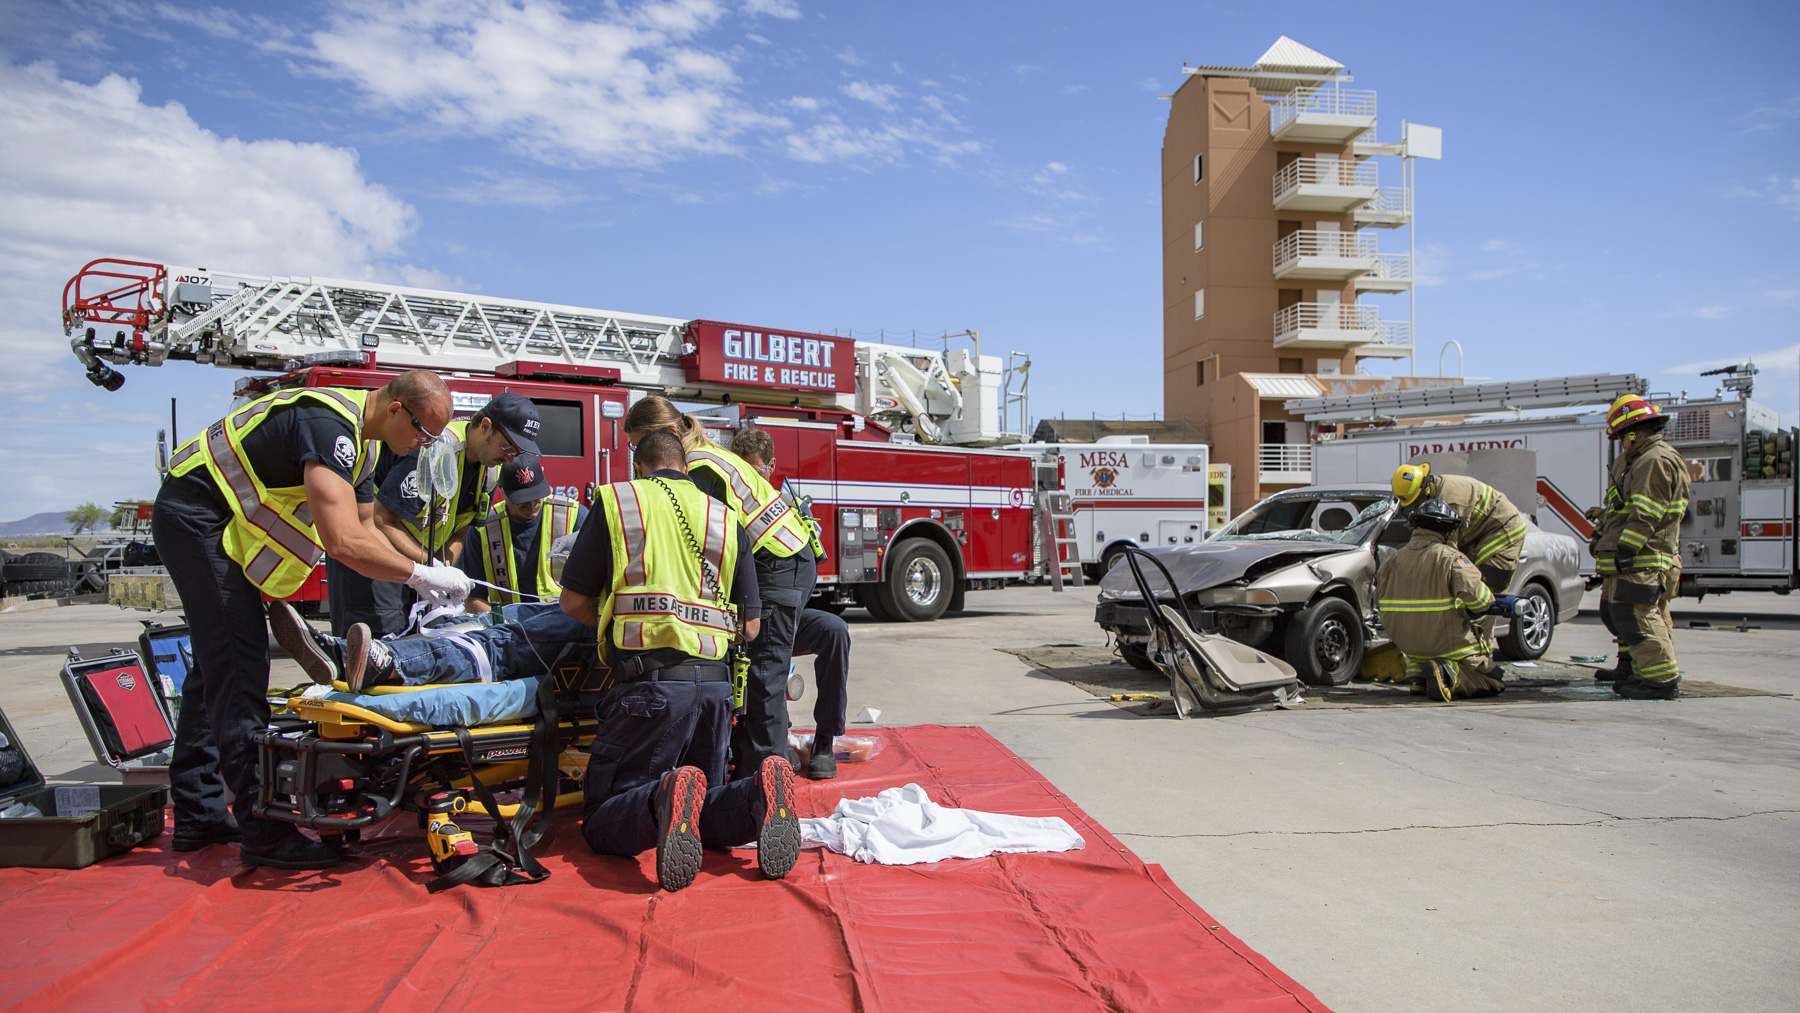 Paramedics attend to a traumatic brain injury victim during a simulated crash at the City of Mesa Public Training Facility.